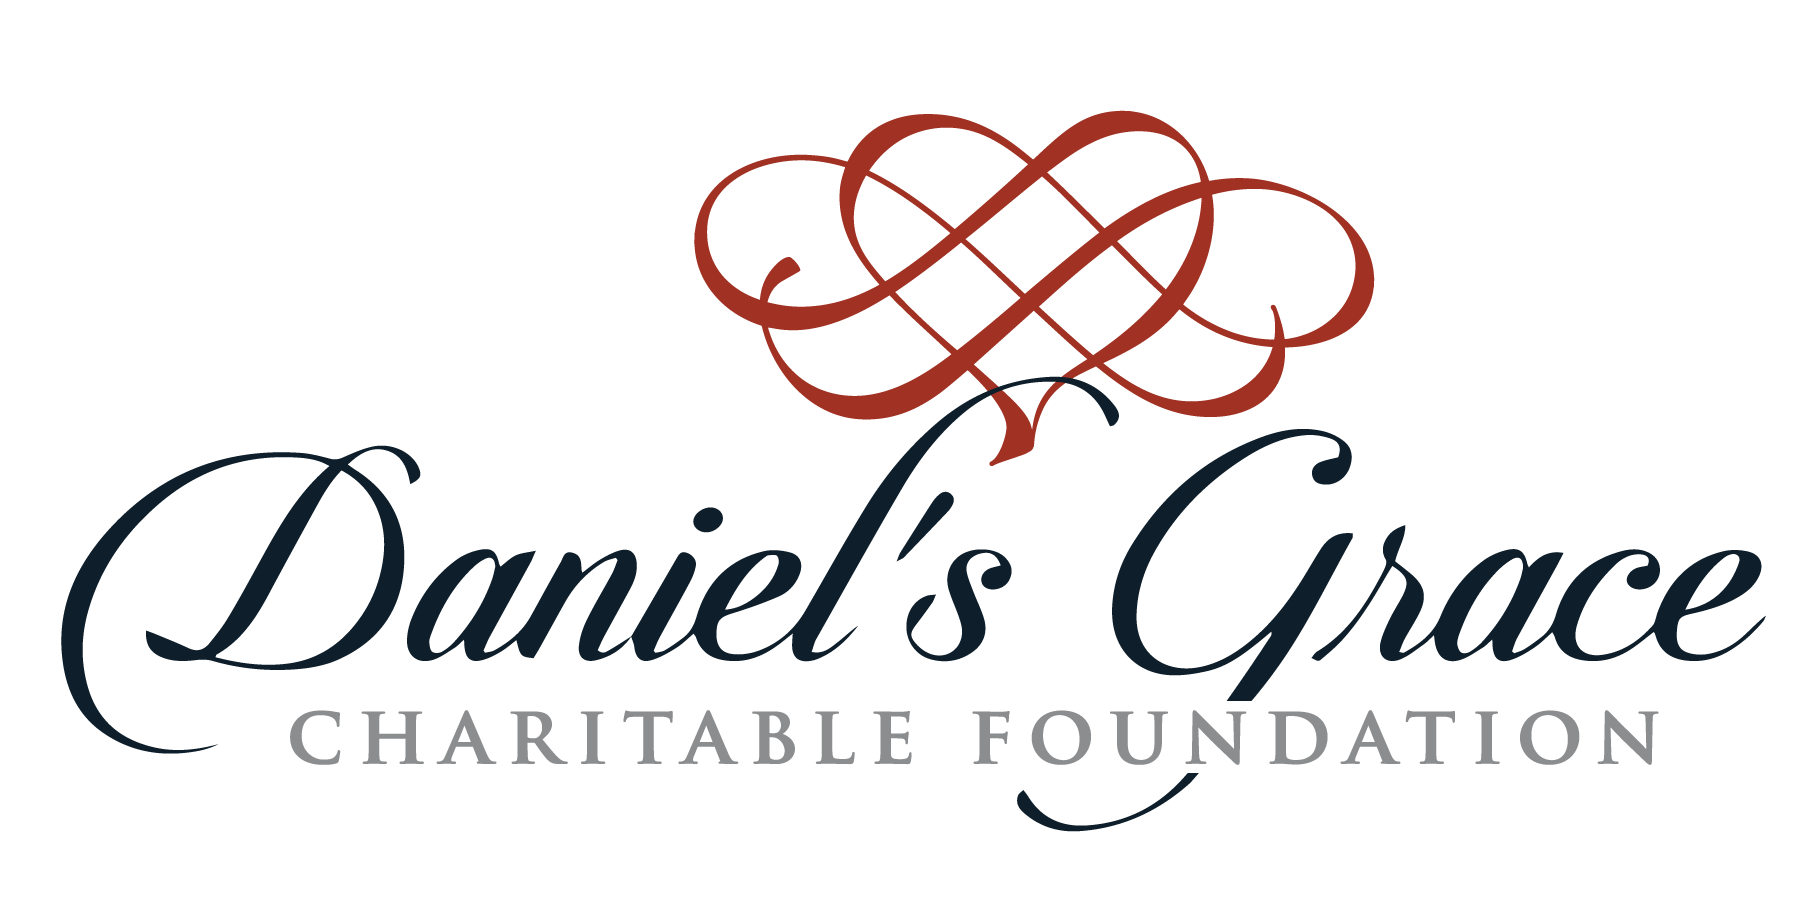 Daniel's Grace Charitable Foundation